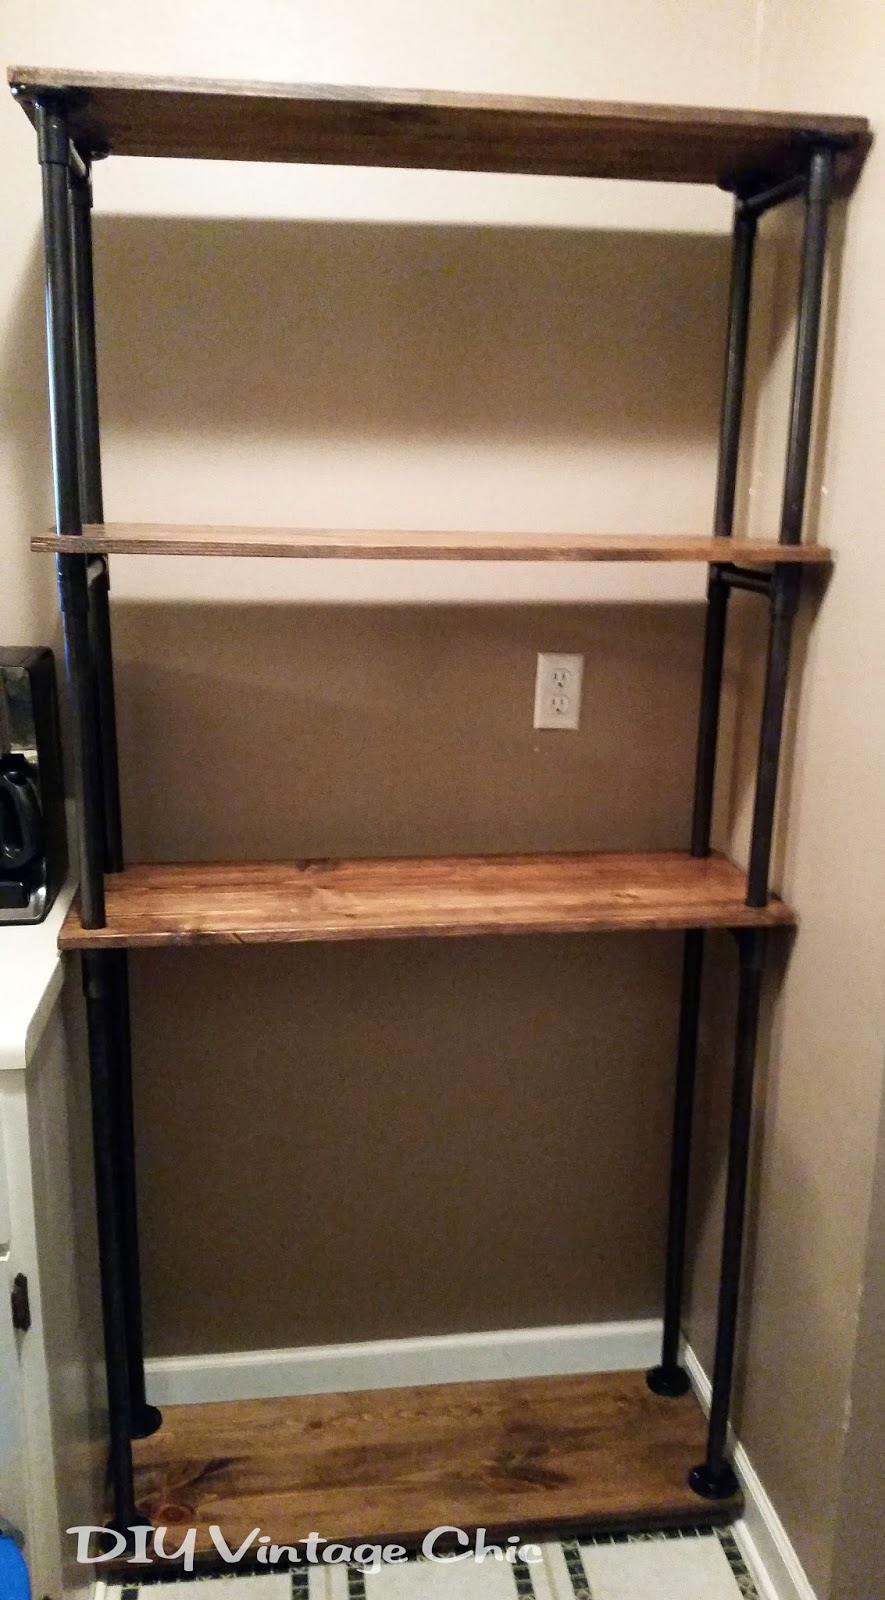 Brand new DIY Vintage Chic: DIY Affordable Pipe and Wood Bakers Rack VW68